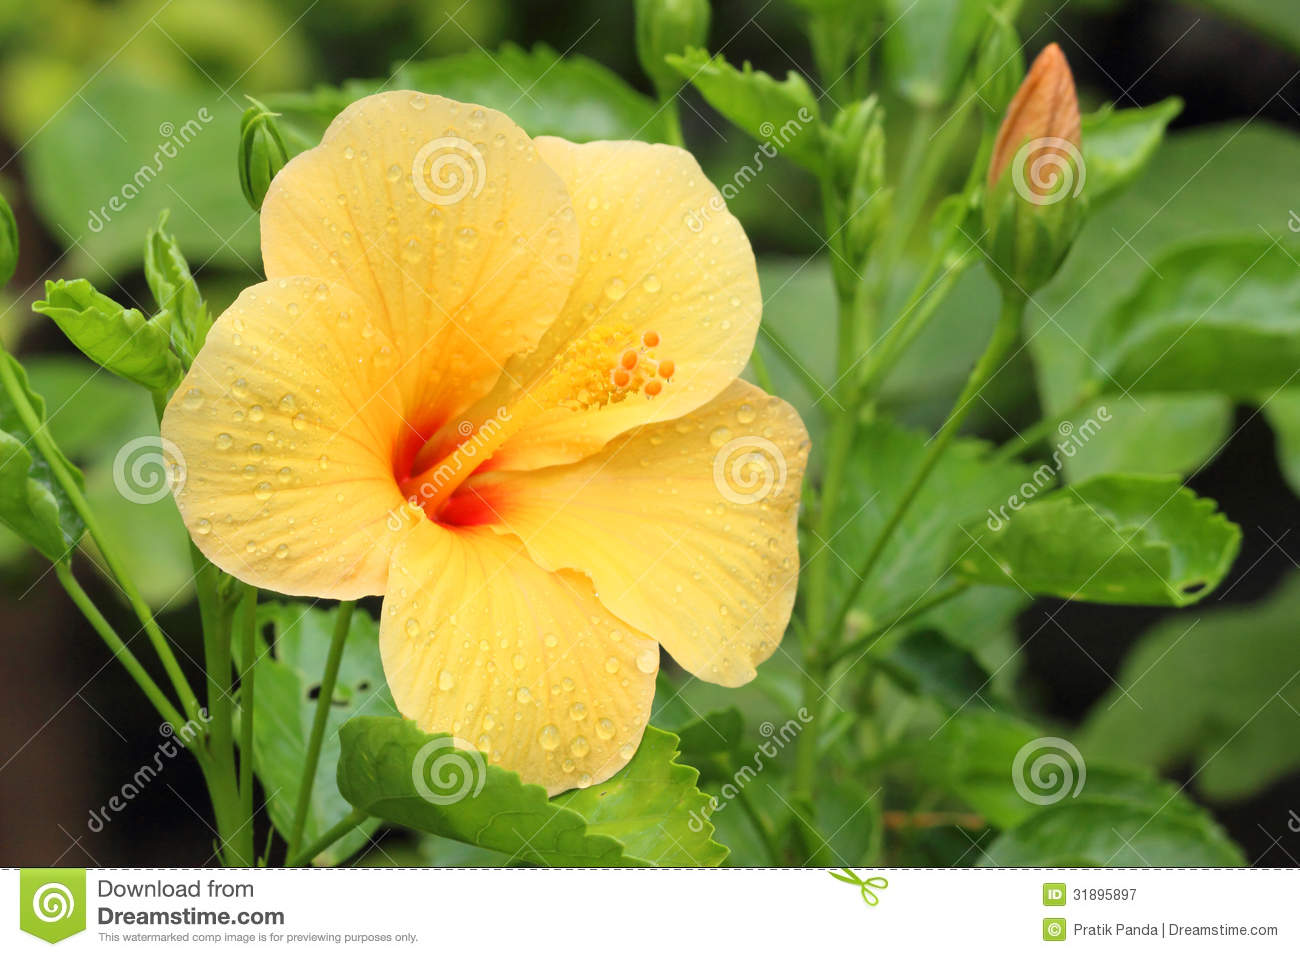 Exotic yellow hibiscus flower and plant stock image image of exotic yellow hibiscus flower and plant stock image image of foliage closeup 31895897 mightylinksfo